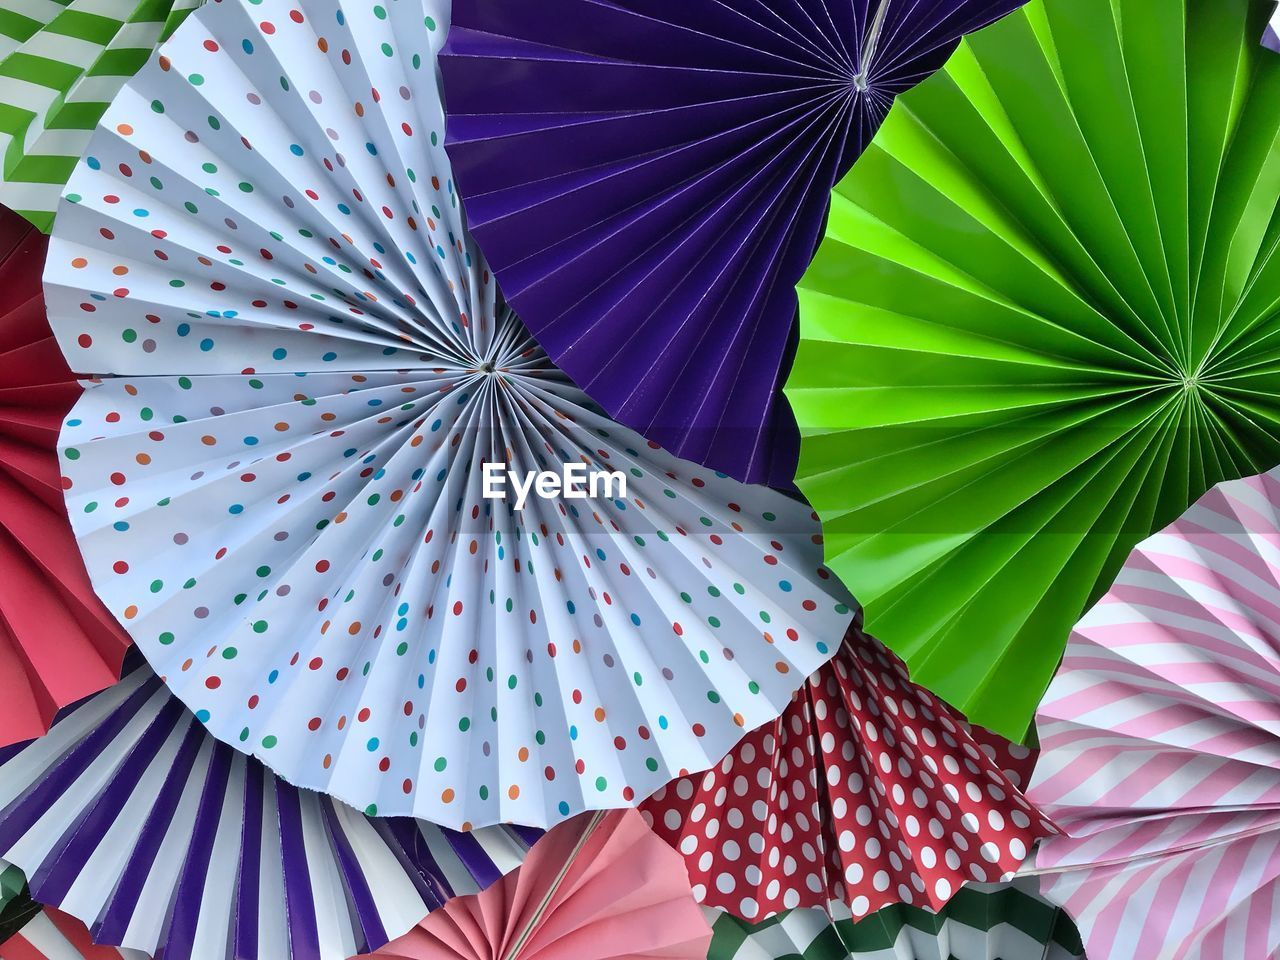 umbrella, protection, security, pattern, no people, multi colored, day, close-up, low angle view, still life, pink color, parasol, full frame, outdoors, decoration, backgrounds, design, safety, nature, floral pattern, purple